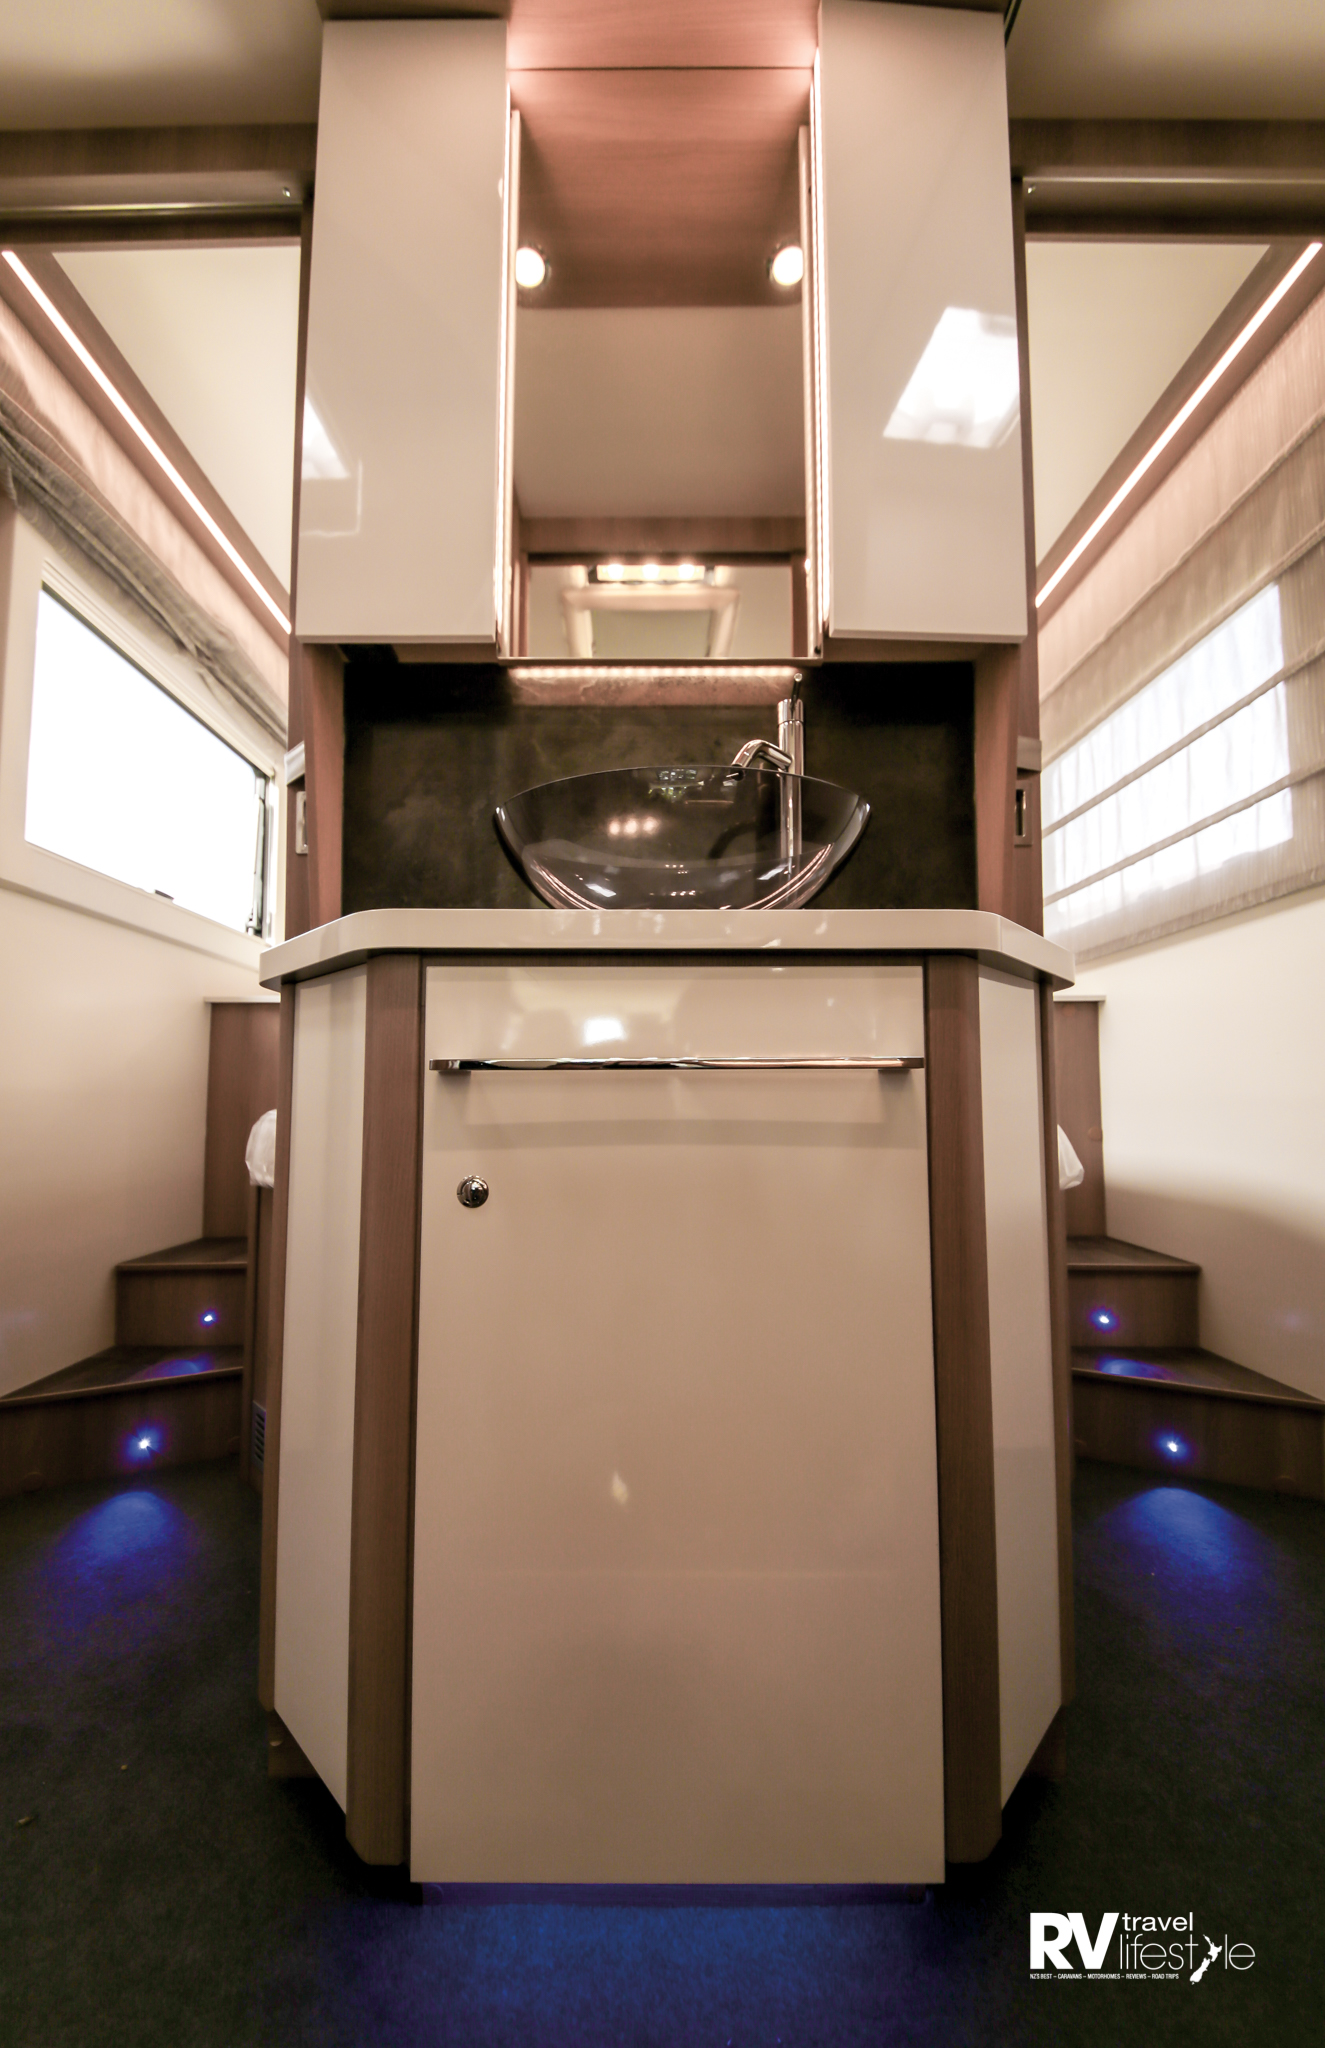 Stylish walk-around sink unit reflects main cabin to create airy feel, or closes off